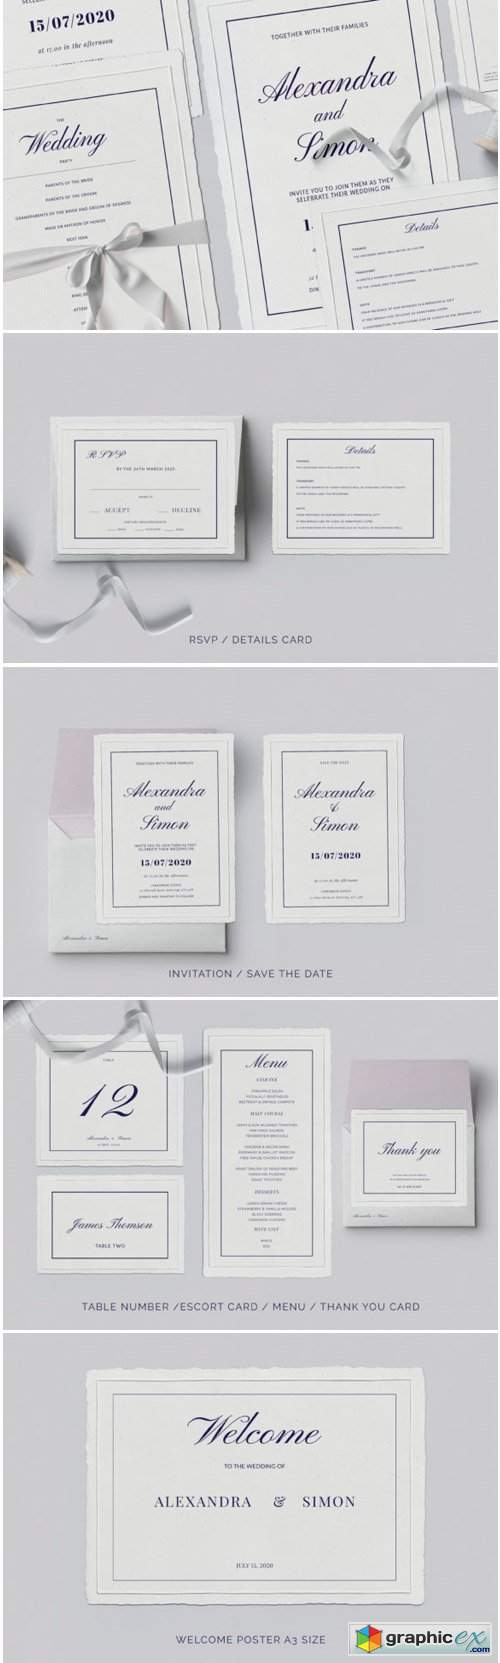 This is an Invitation Wedding Template Suite